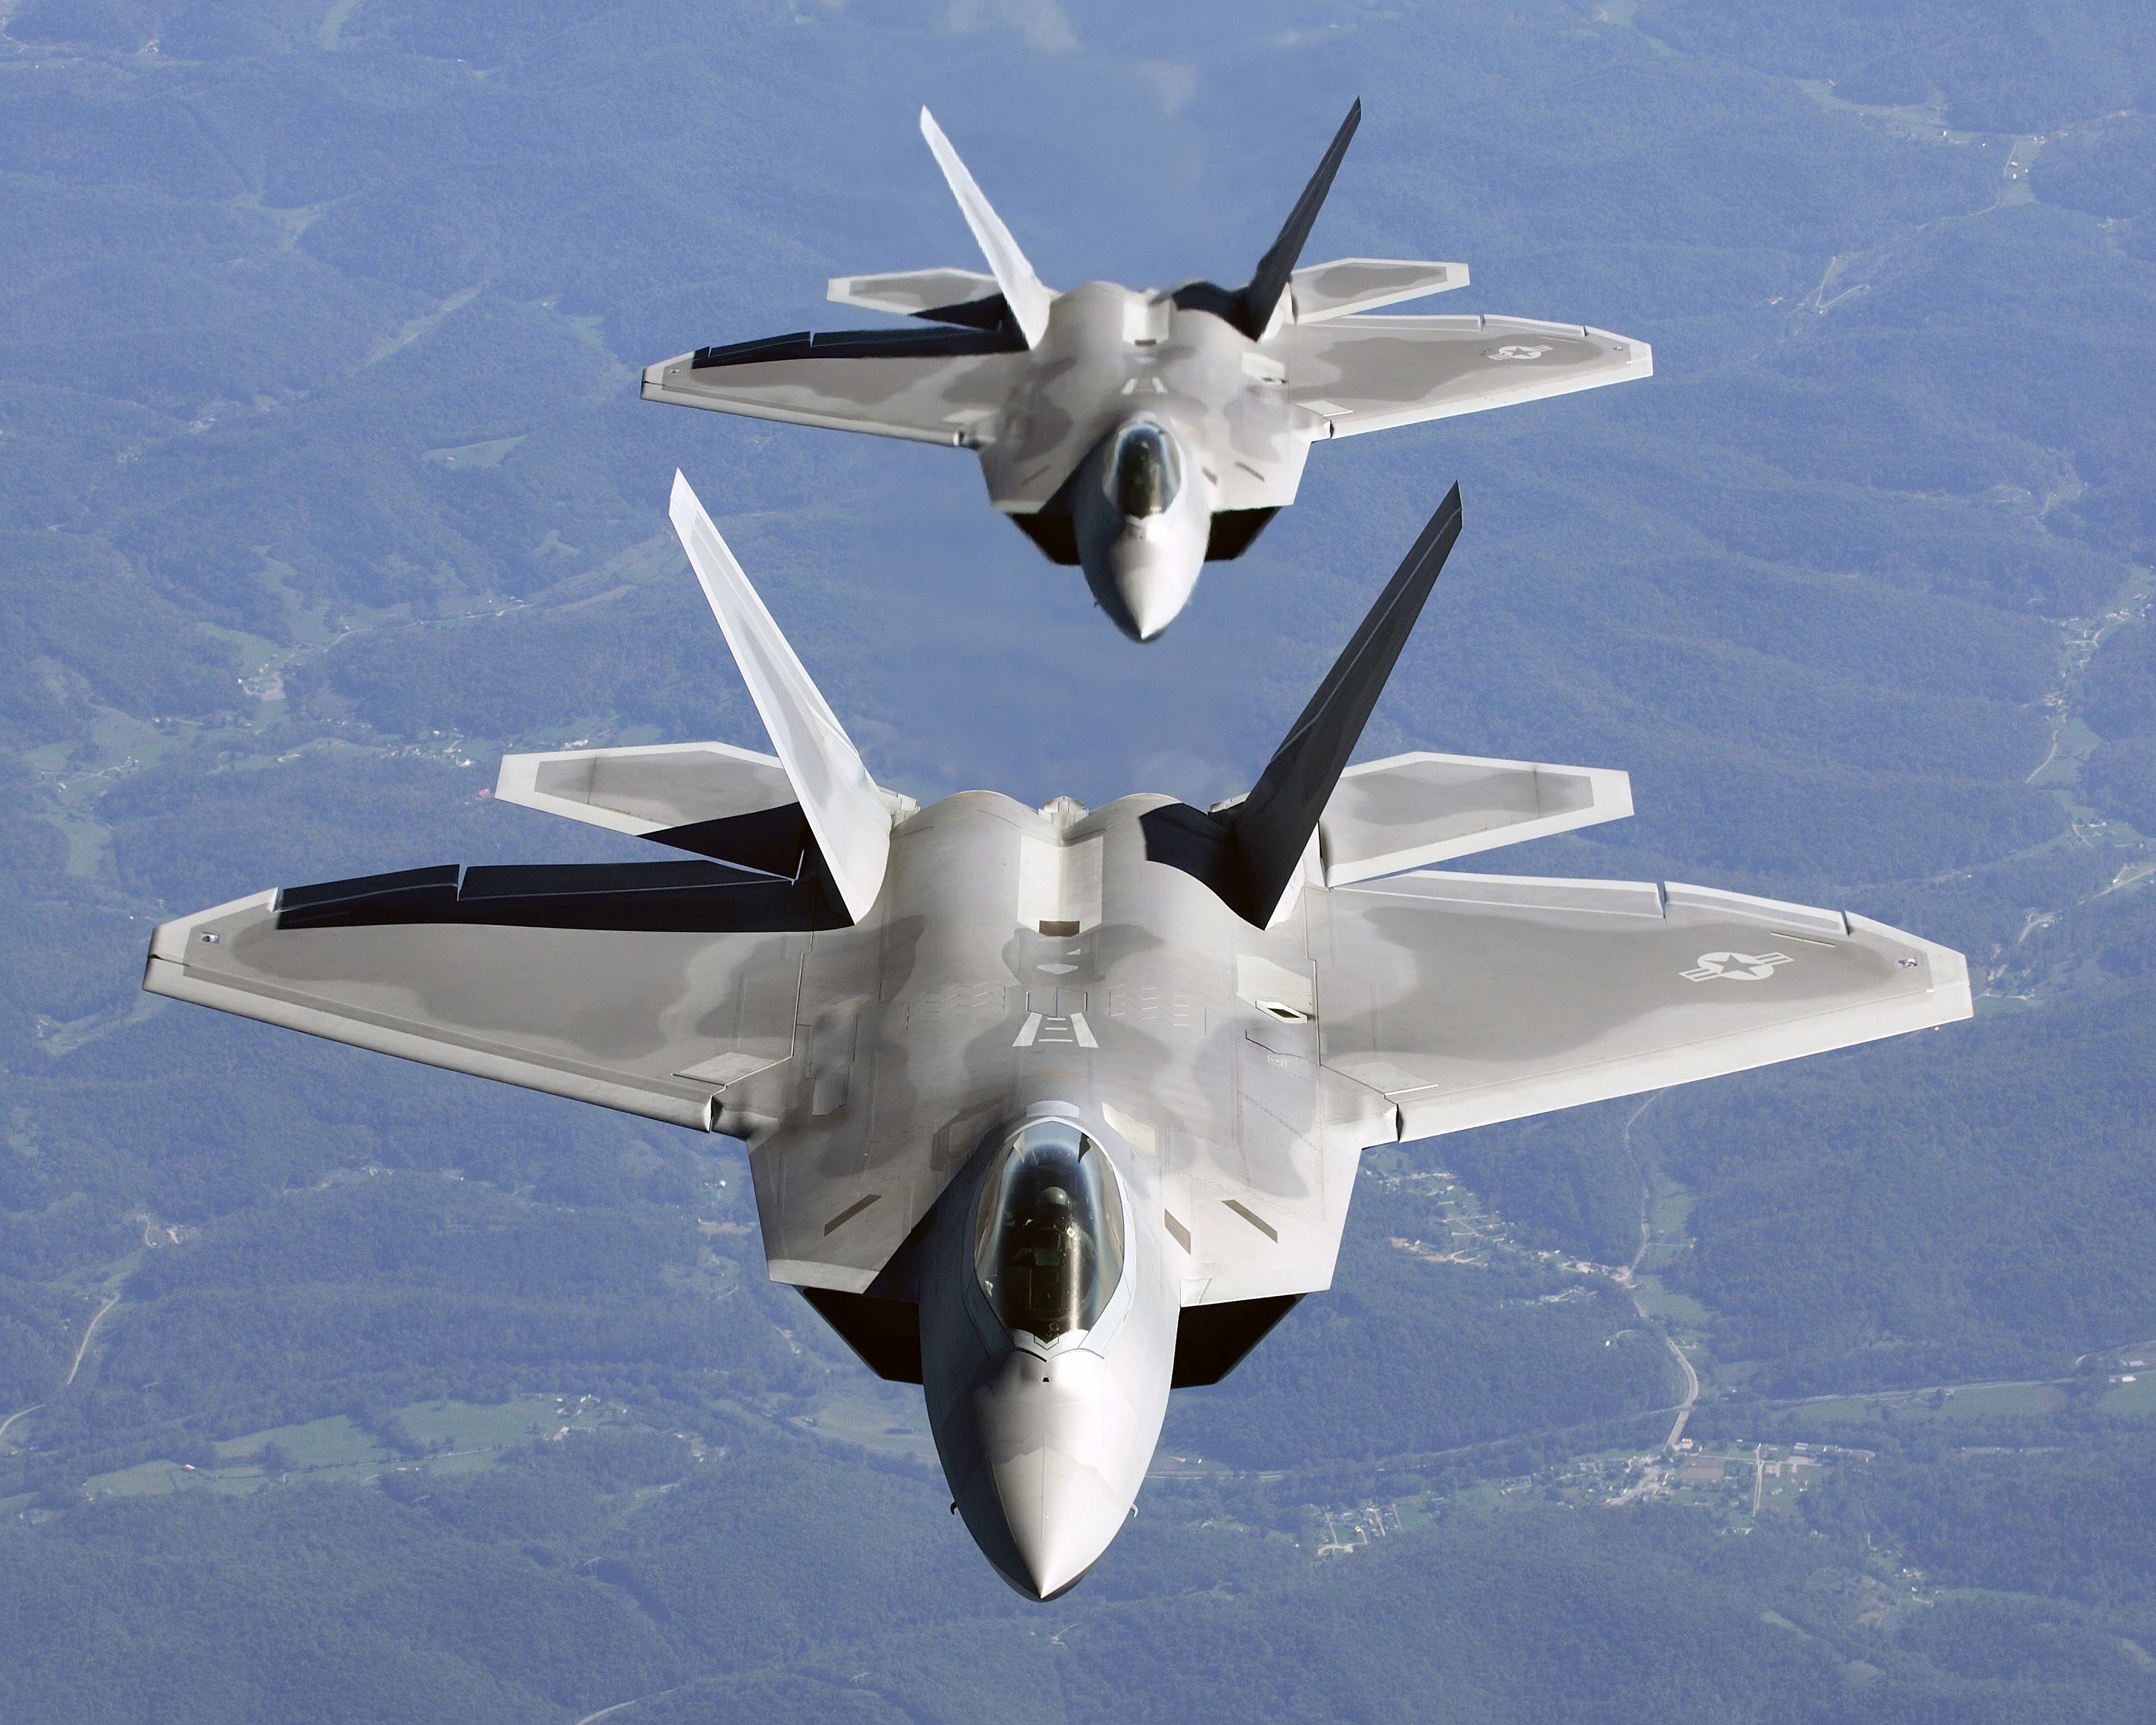 http://upload.wikimedia.org/wikipedia/commons/2/25/Two_F-22A_Raptor_in_column_flight_-_%28Noise_reduced%29.jpg